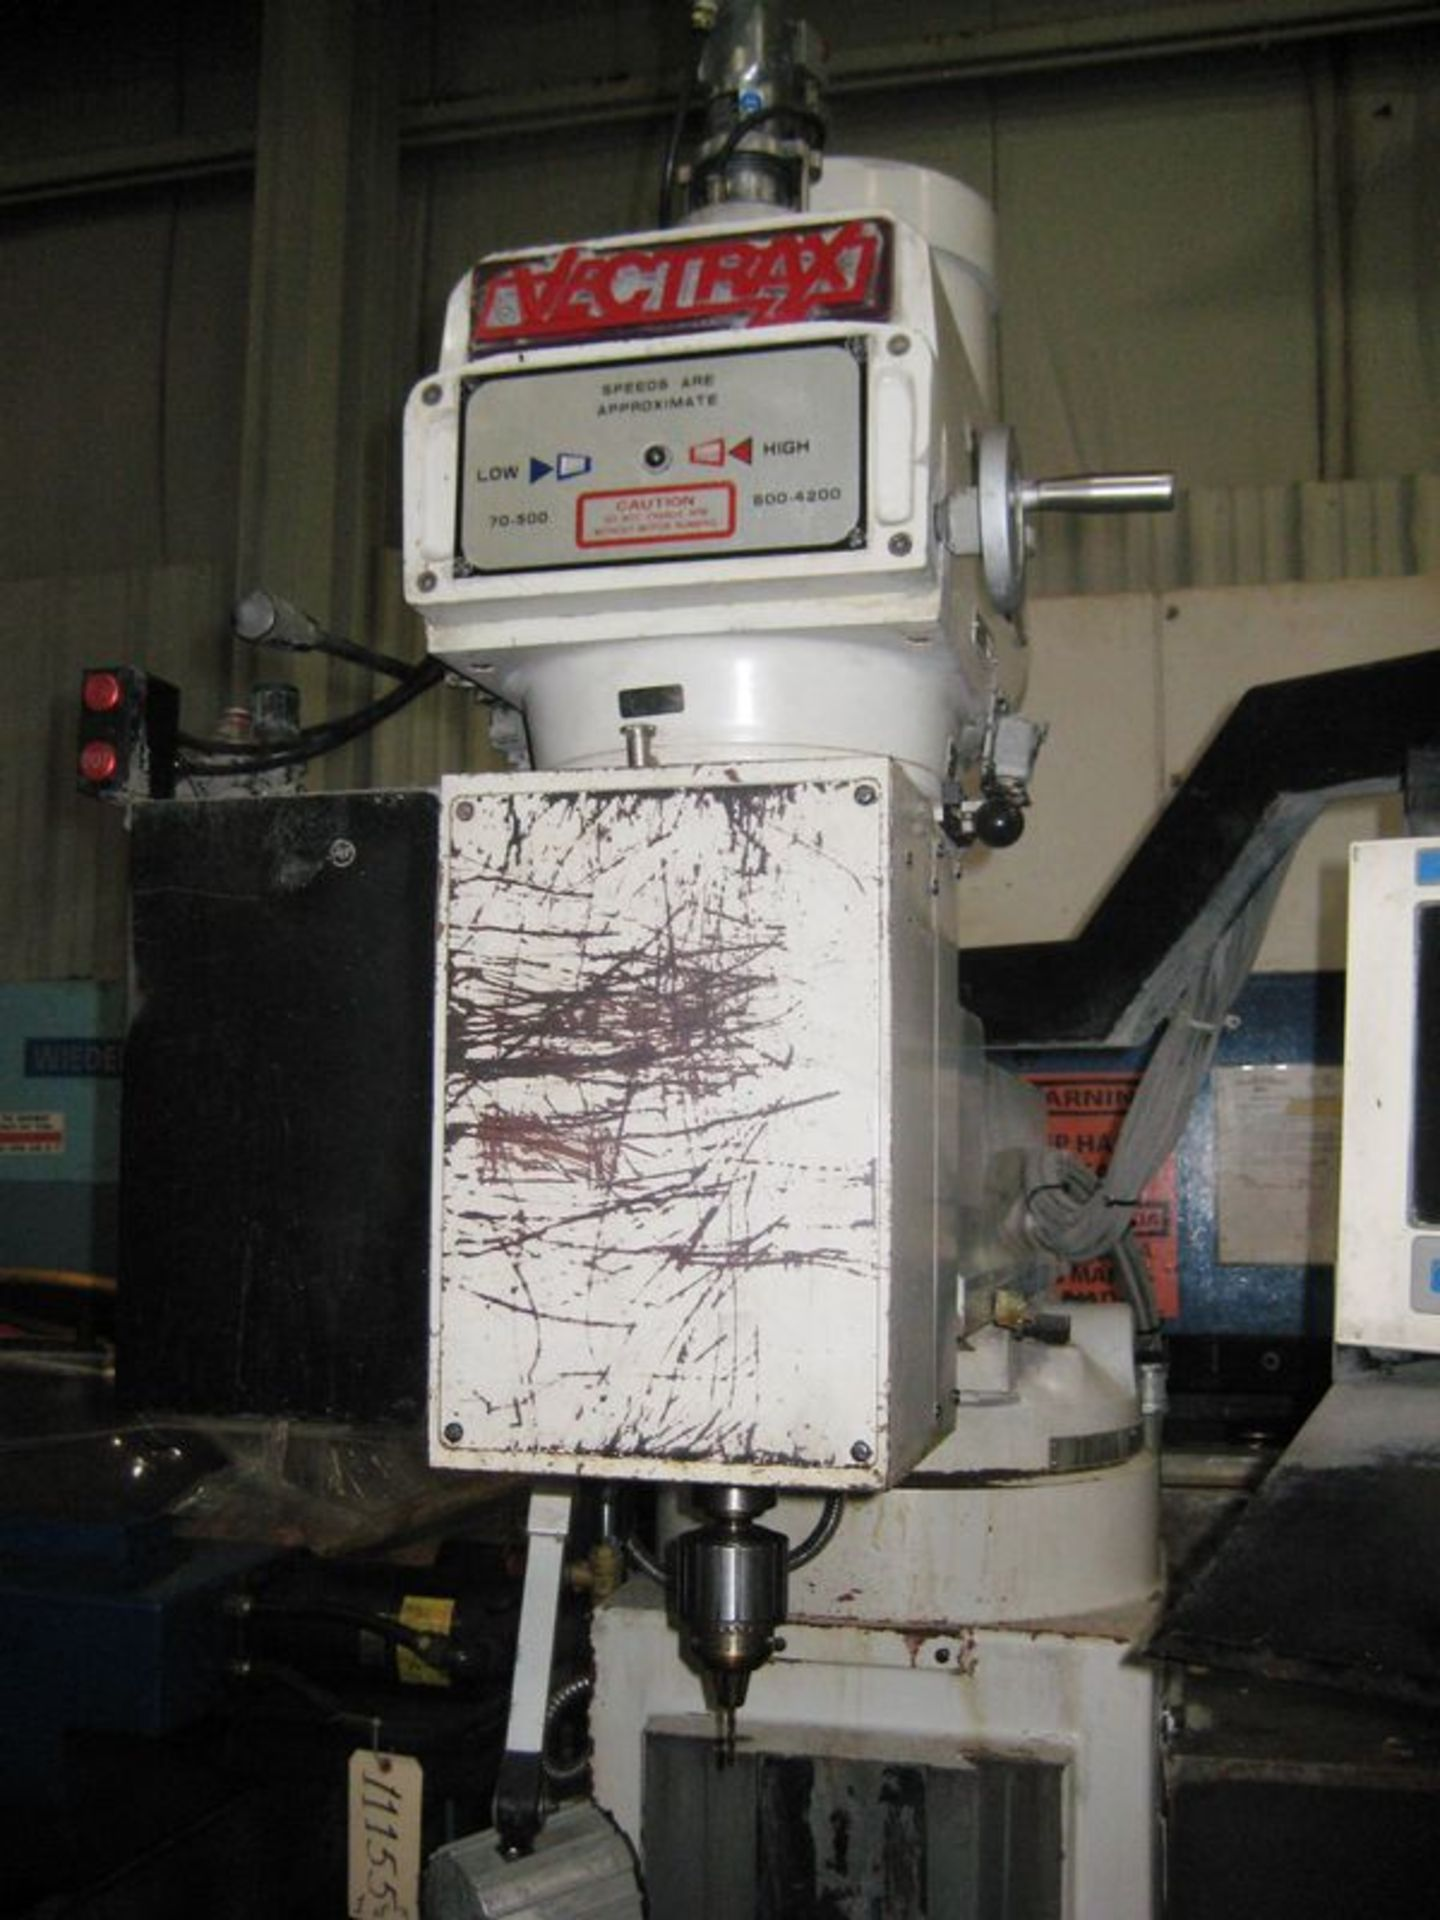 Lot 20 - Vectra GS-N16V 3-Axis CNC Knee Type Milling Machine, S/N 9030192NV, New 2001